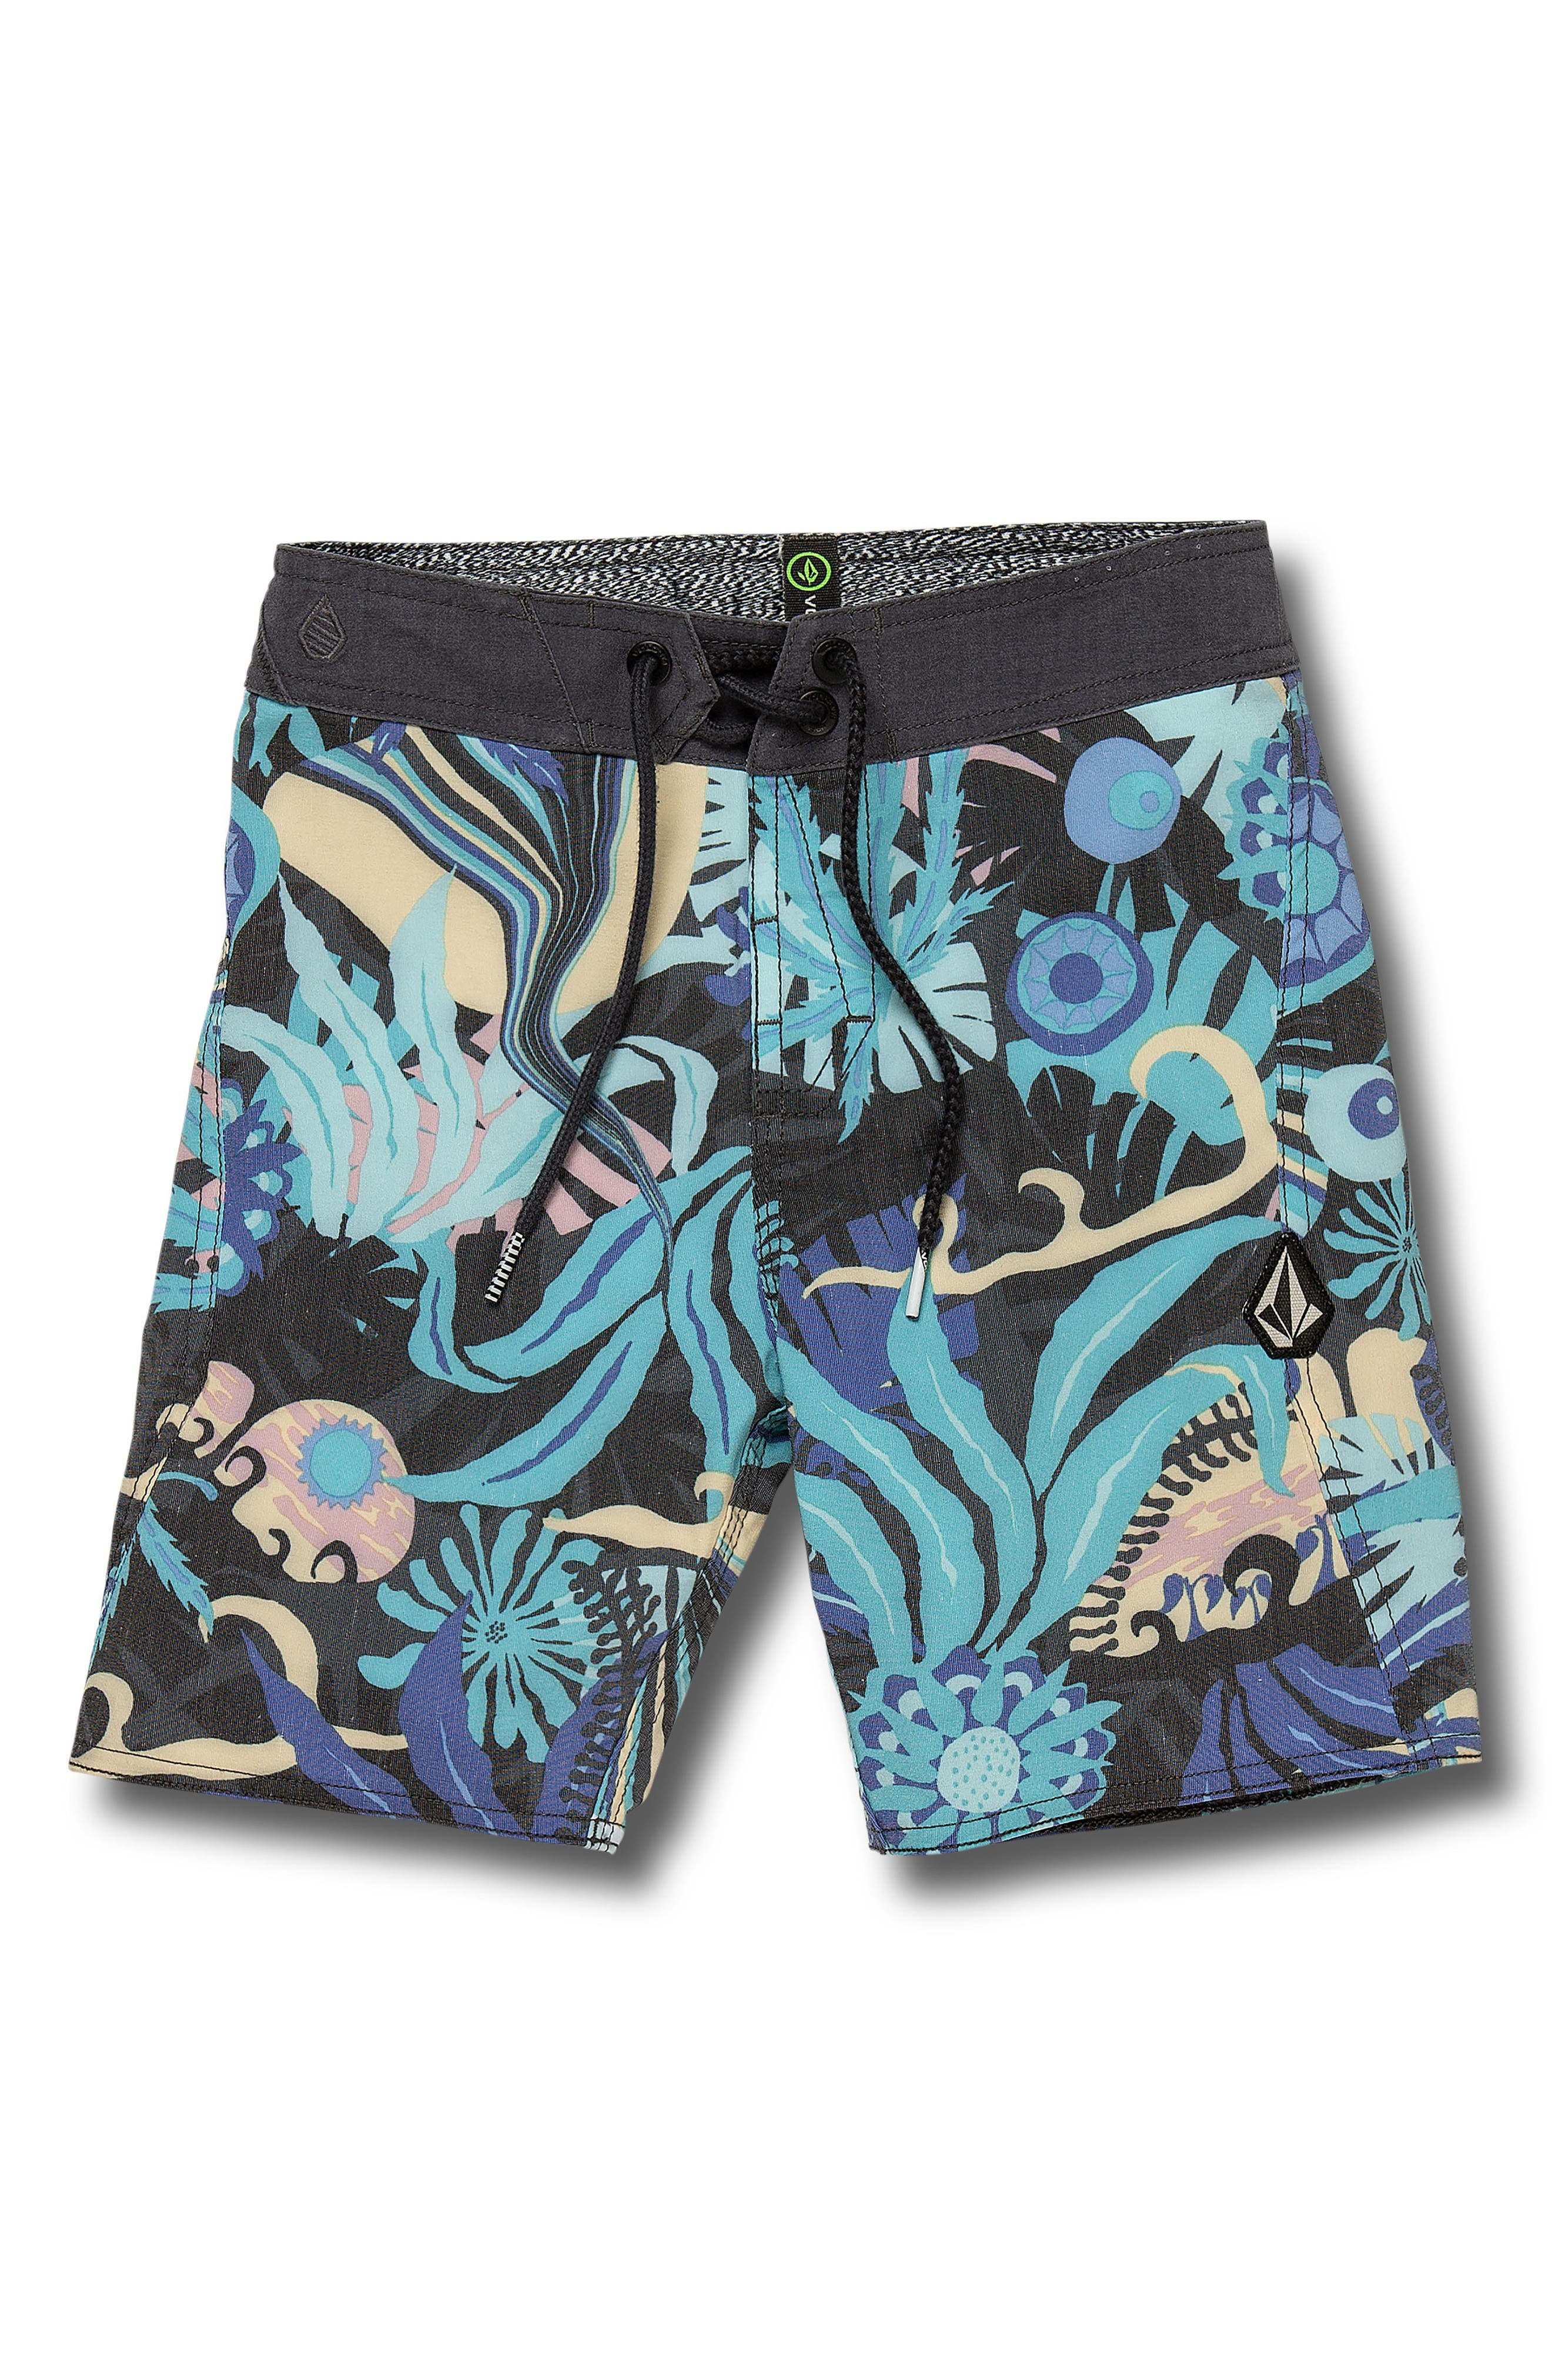 Toddler Boys Volcom Tripped Board Shorts Size 4T  Black